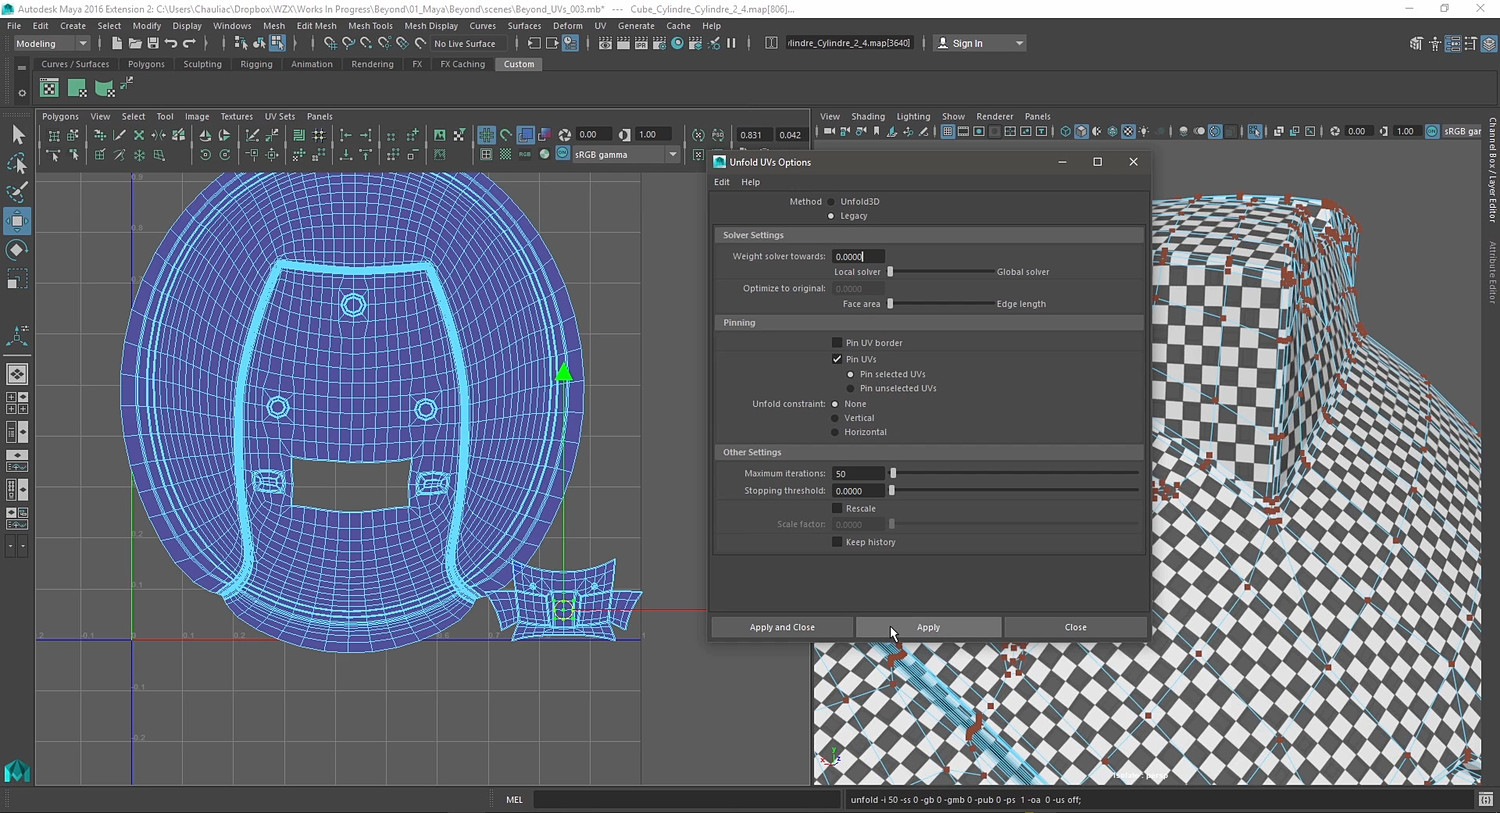 Project Beyond - Character creation in Cinema 4D